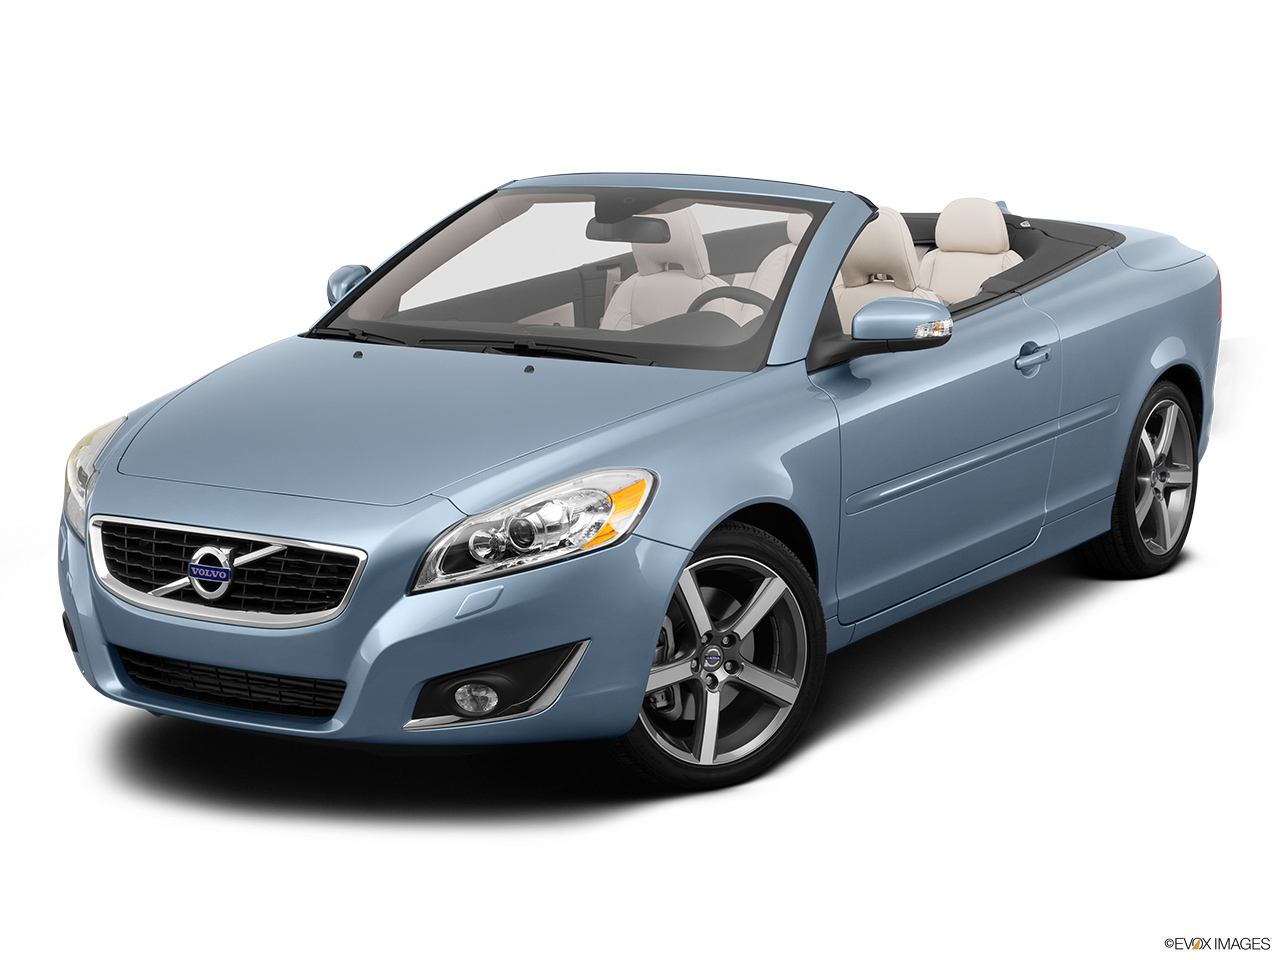 2013 Volvo C70 T5 Platinum Front angle view.